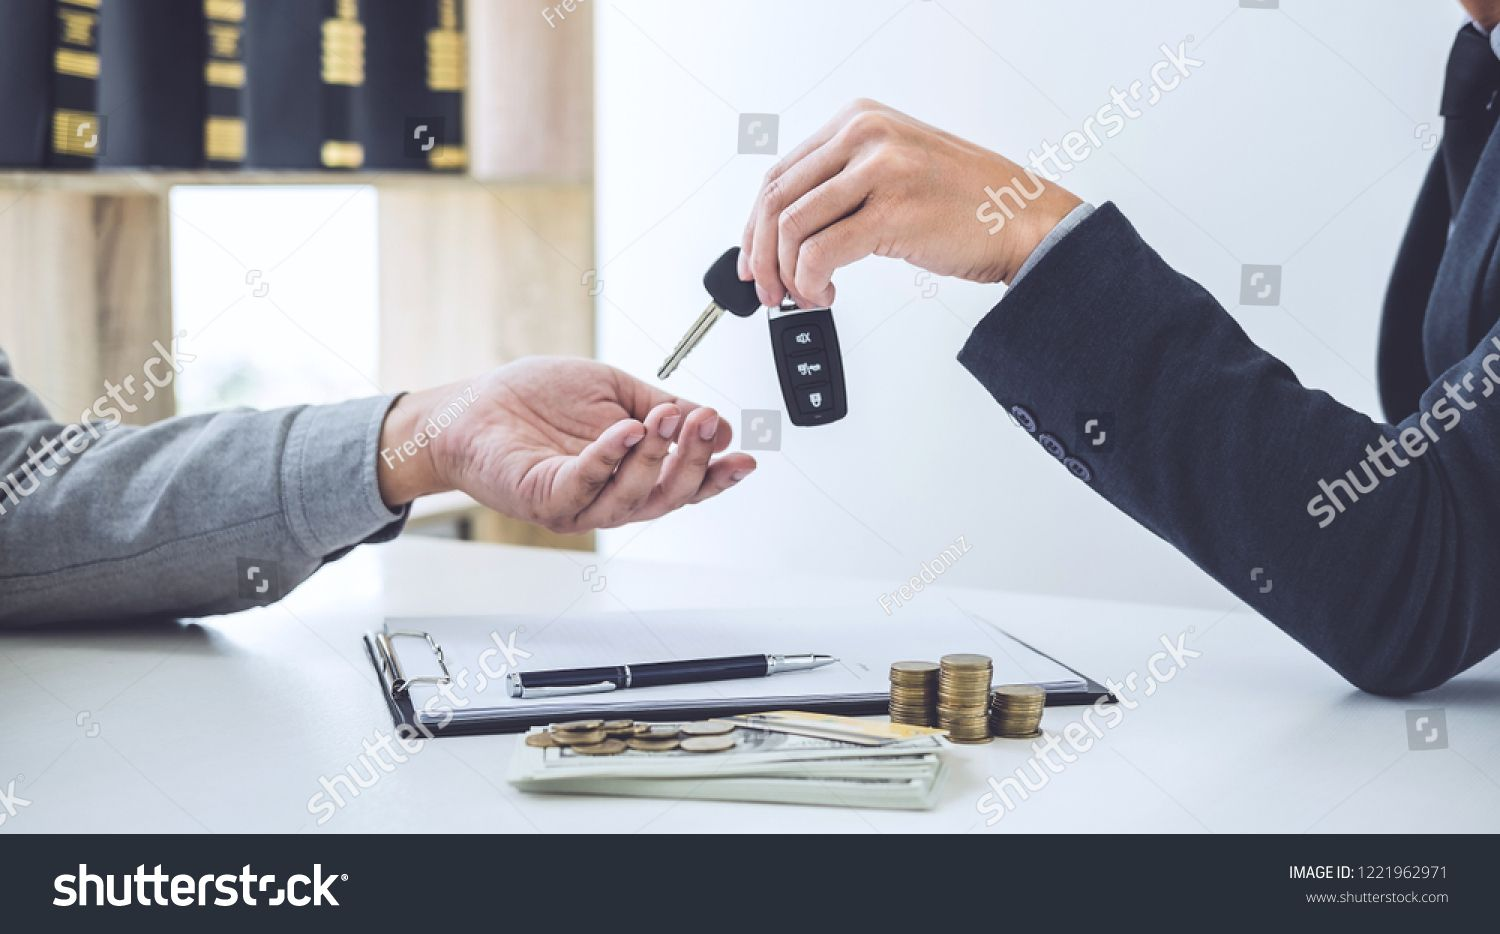 Salesman Send Key To Customer After Good Deal Agreement Successful Car Loan Contract Buying Or Selling New Vehicle Royalty Fr Car Loans Balance Transfer Loan